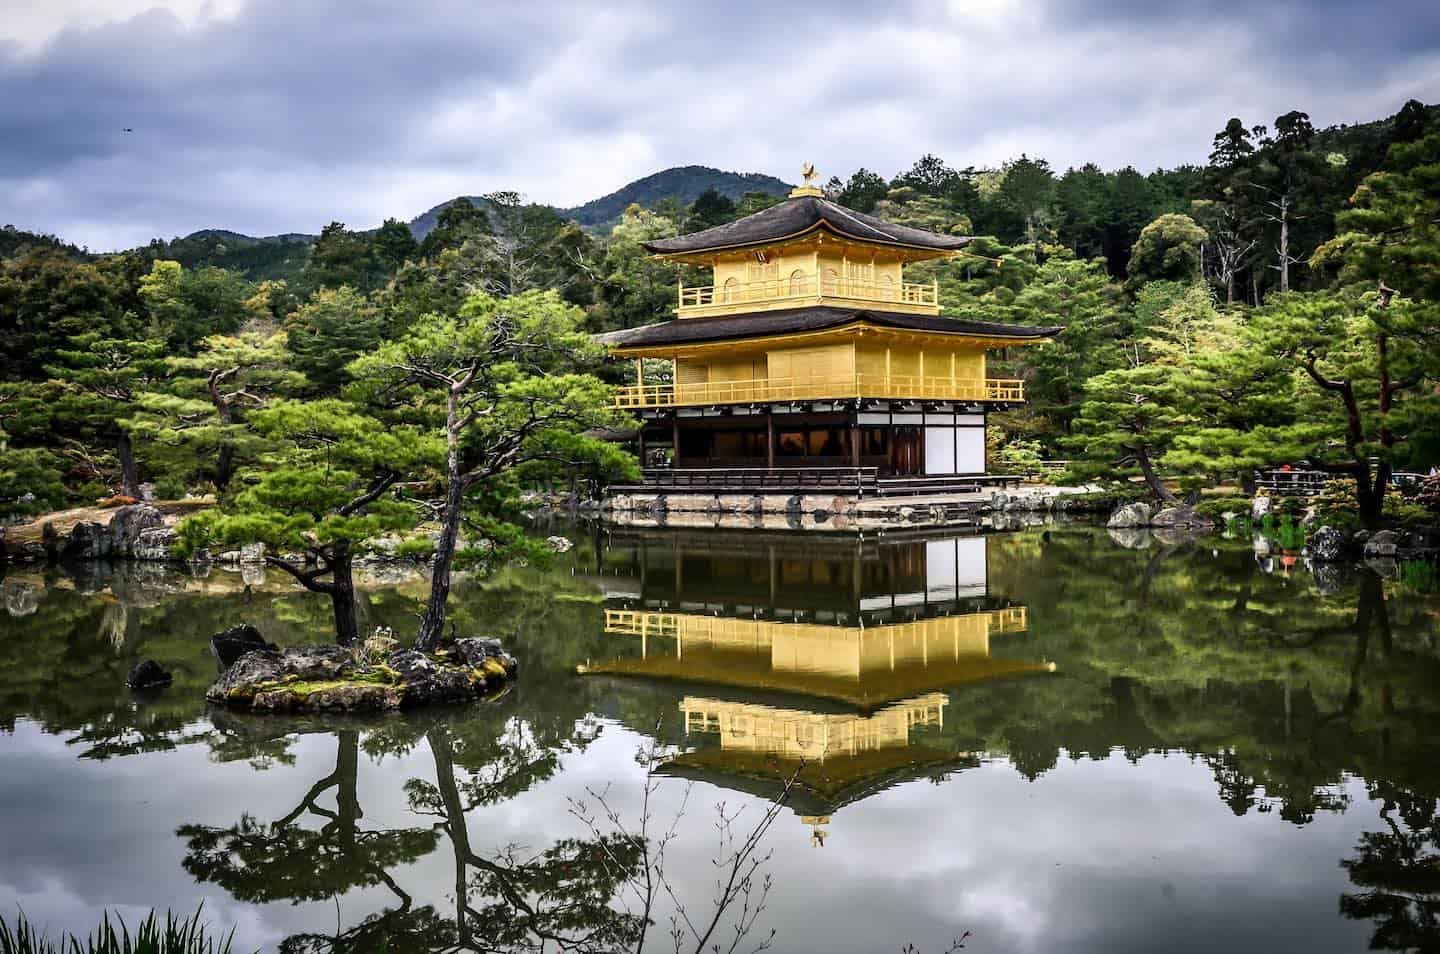 Goldener Tempel in Kyoto, Japan